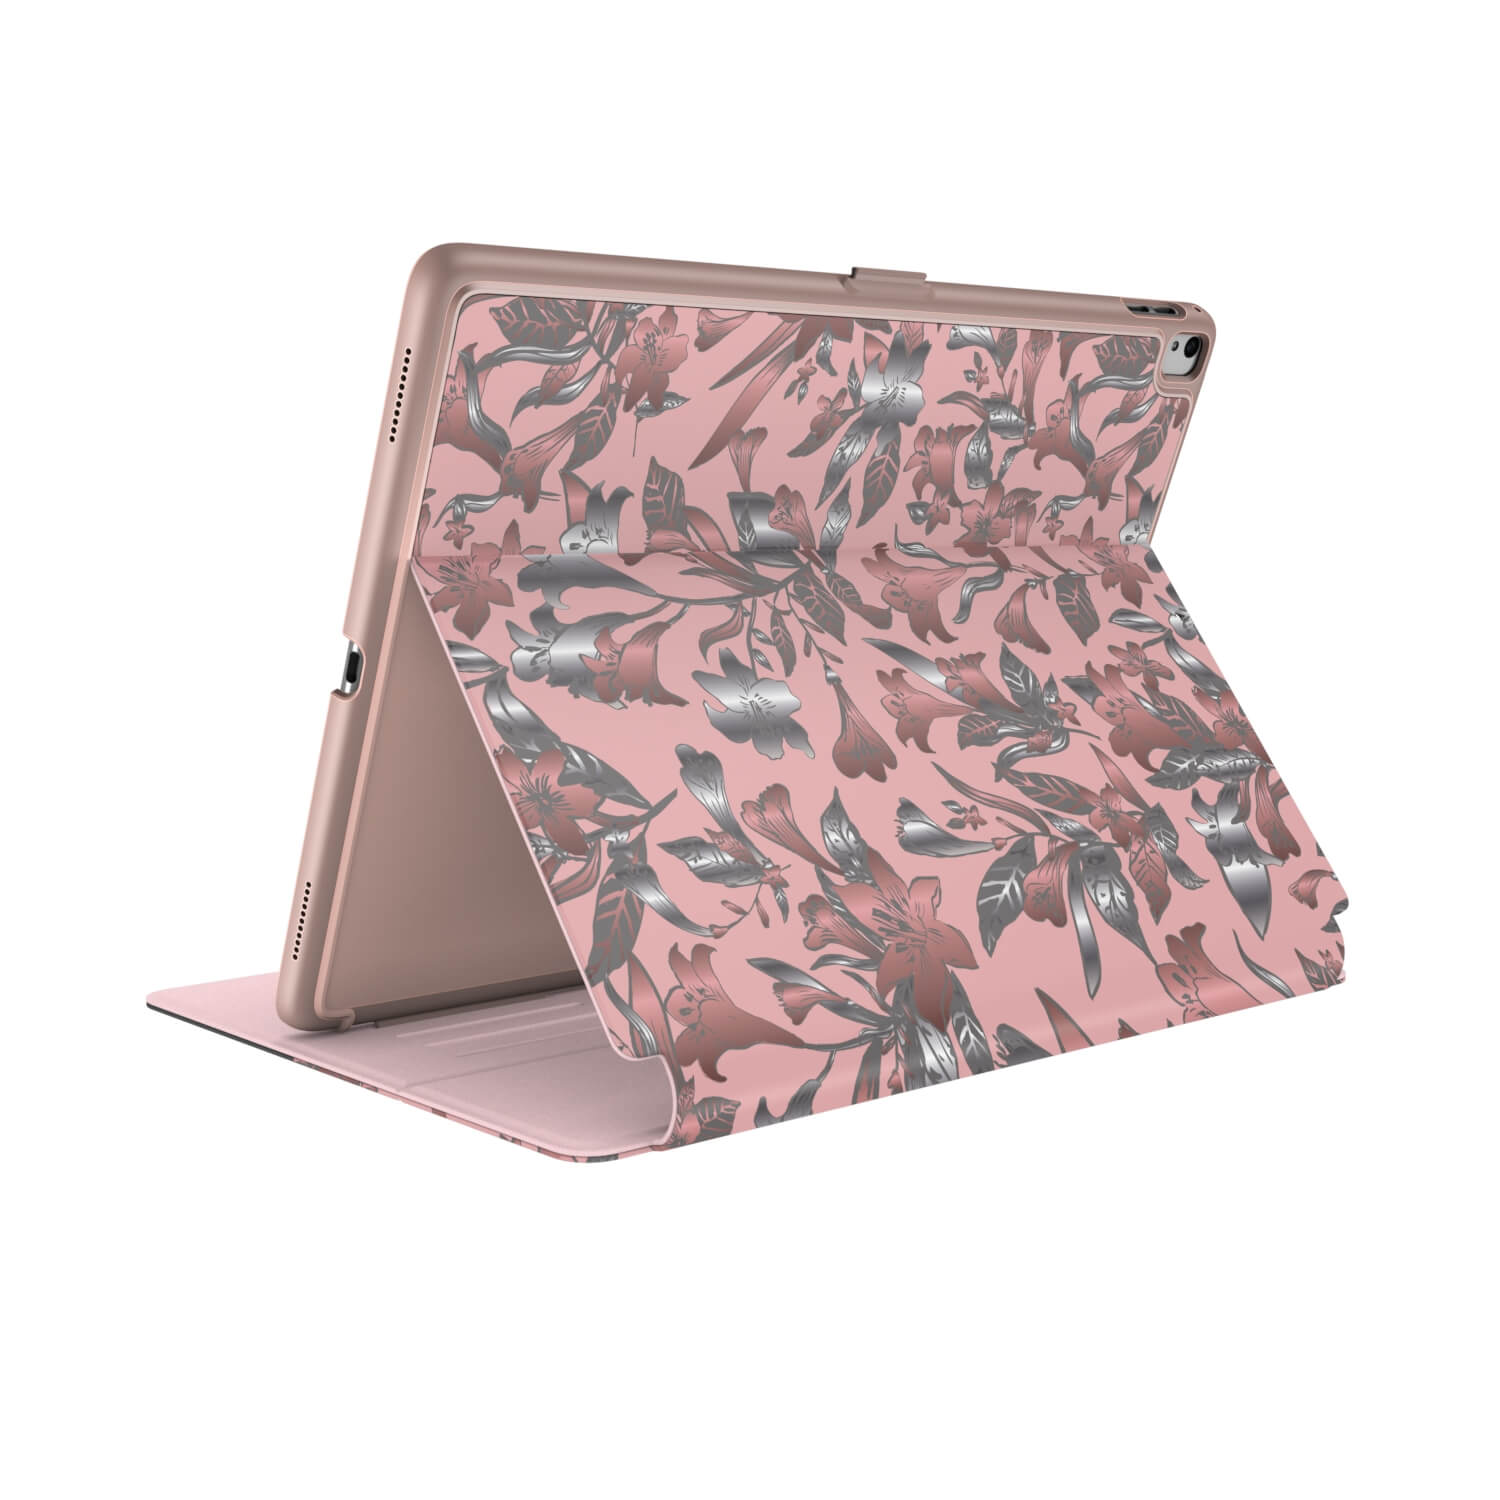 Compare prices for Speck Balance FOLIO PRINT 10.5 inch iPad Pro Cases LillyModern Rose Gold/Crepe Pink/Cathedral Grey